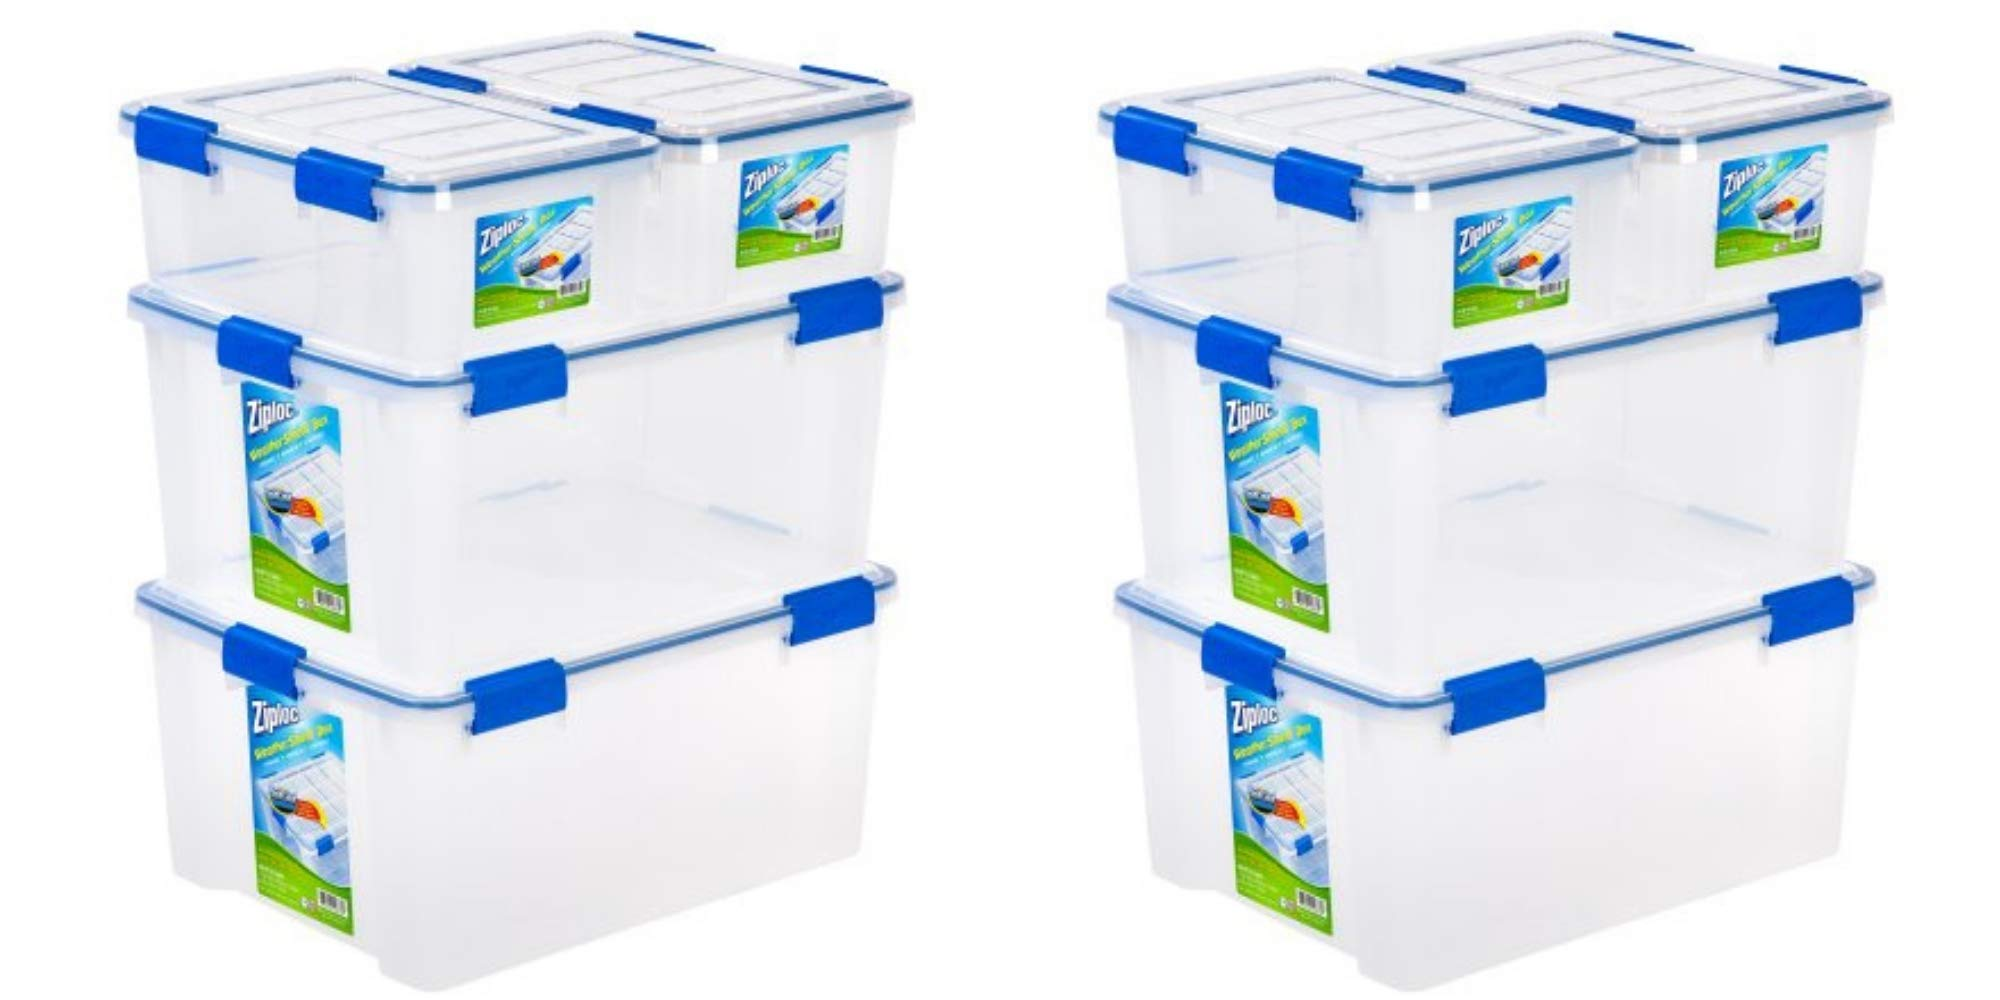 Ziploc 16 and 60 Quart WeatherShield Storage Box, (8- Pack), Clear